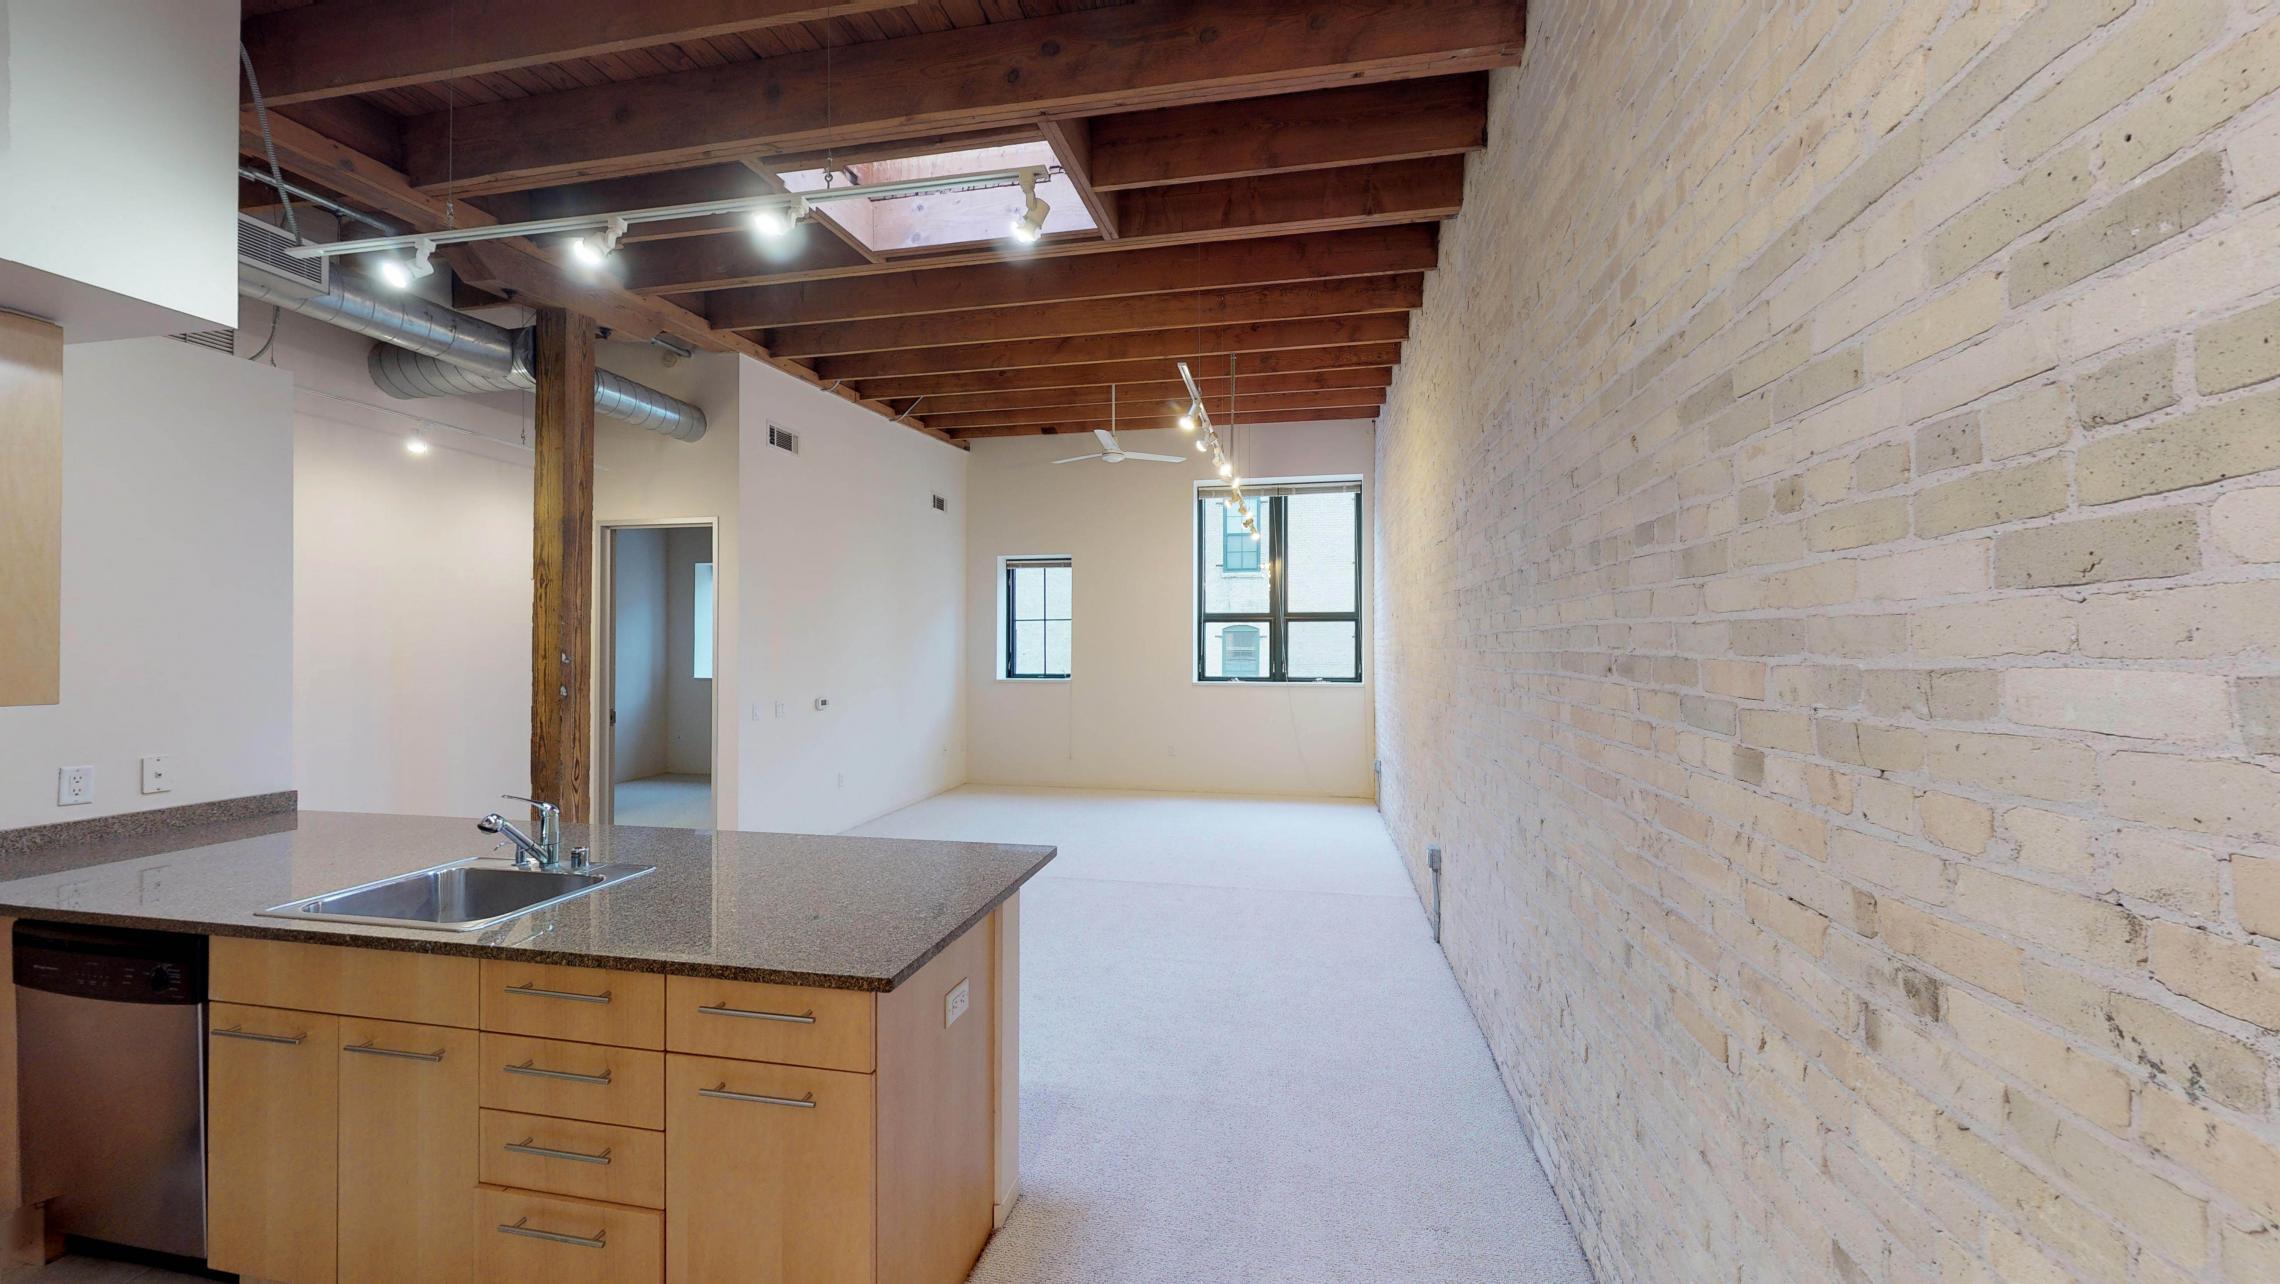 Tobacco-Lofts-Apartments-Lofted-Design-Unique-Upscale-Stunning-Sunshine-Cats-Lofted-Brick-Garage-Courtyard-Grill-Fitness-Historic-Yards-Warehouse-Apartment- W209-One-Bedroom-Skylight